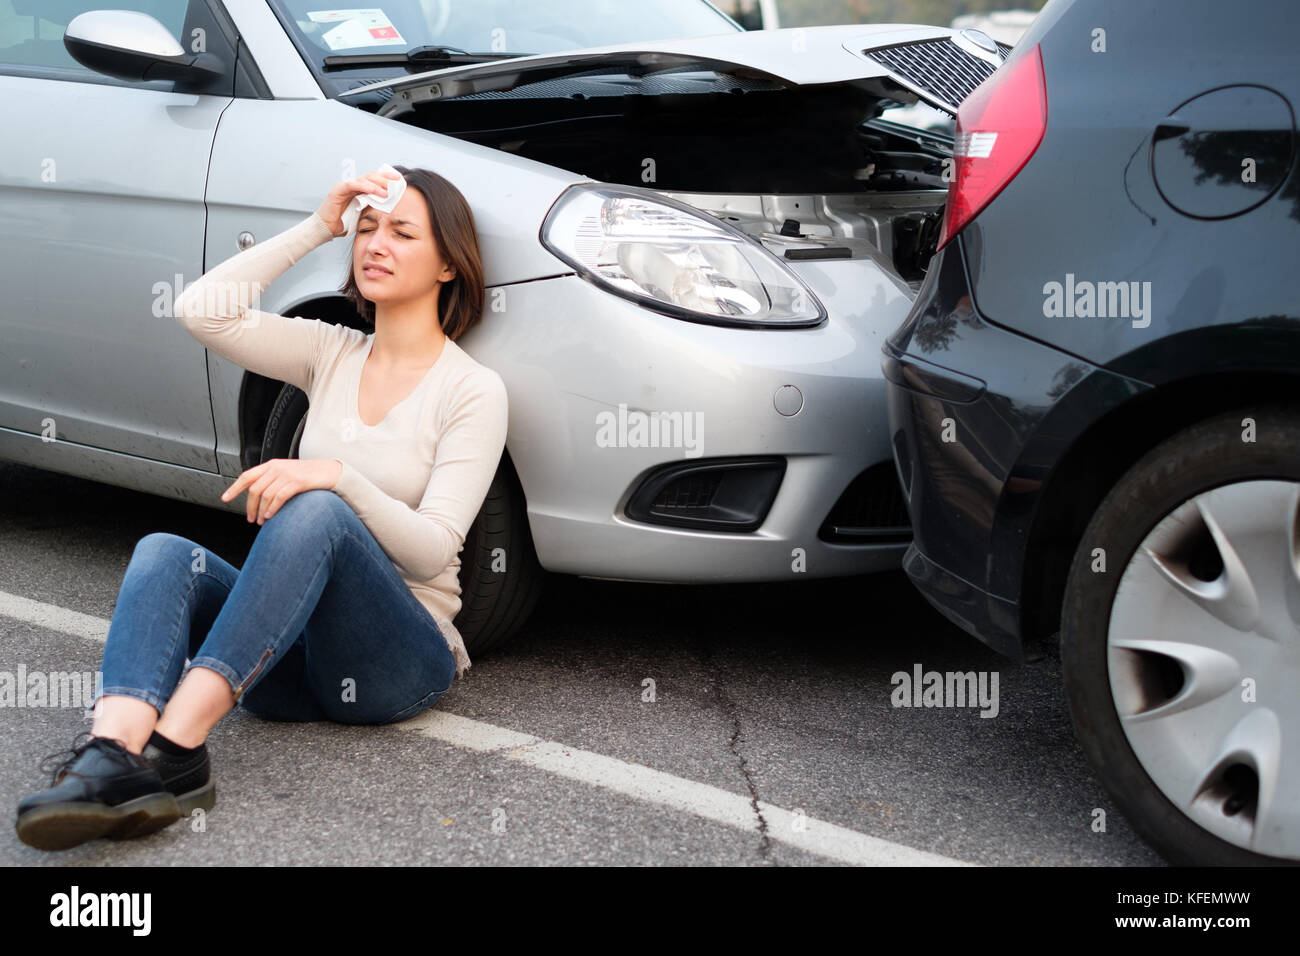 Injured In Accident Injured Girl After Car Accident In The Street Stock Photo